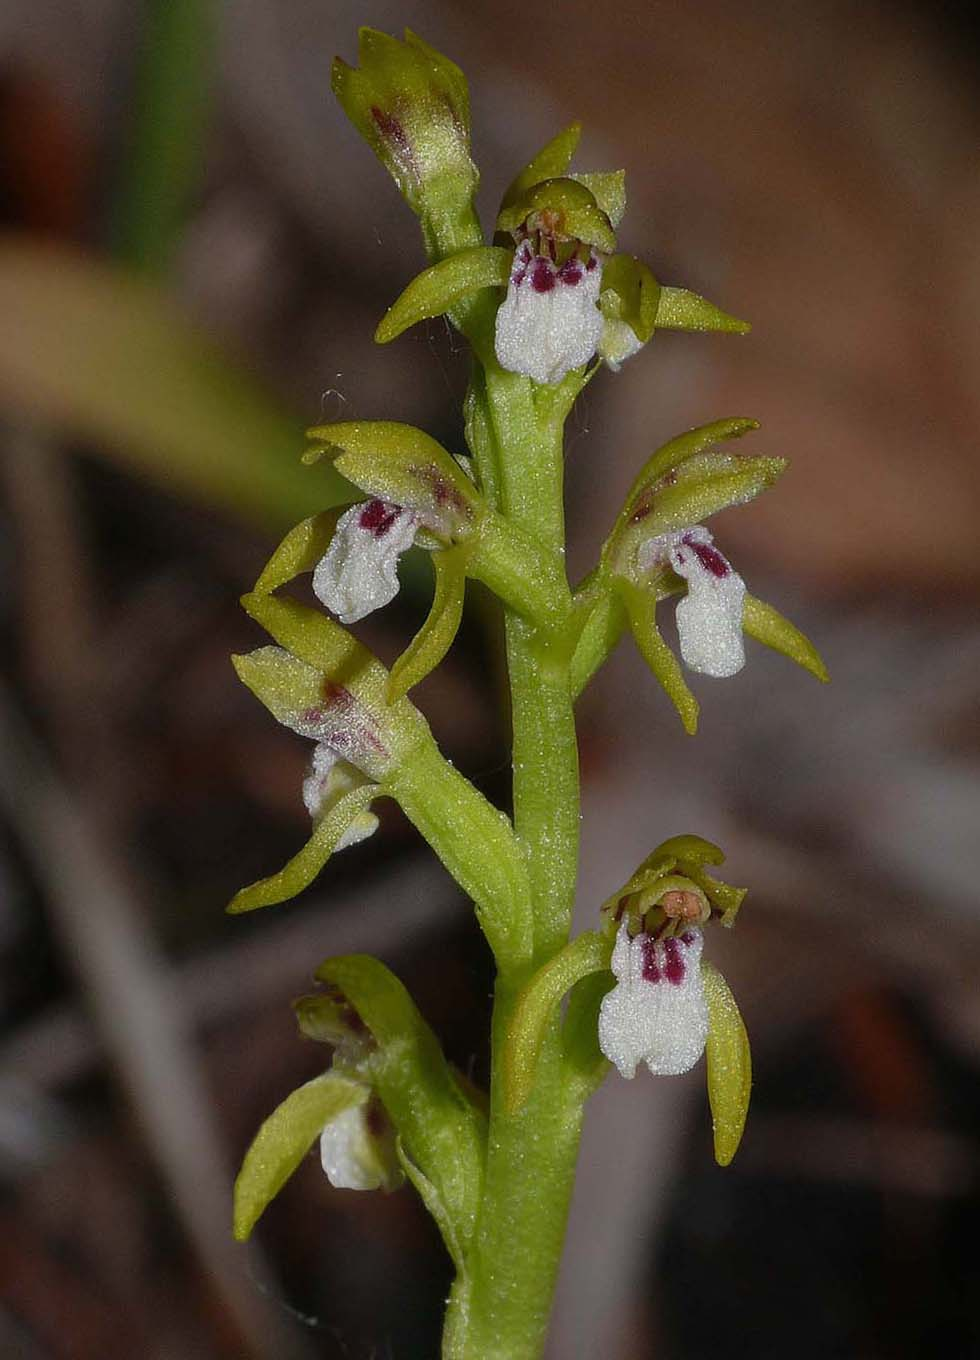 http://www.orchidsofbritainandeurope.co.uk/Web%20pictures/Corallorhiza%20trifida%2041%20%28Vercors%29.jpg